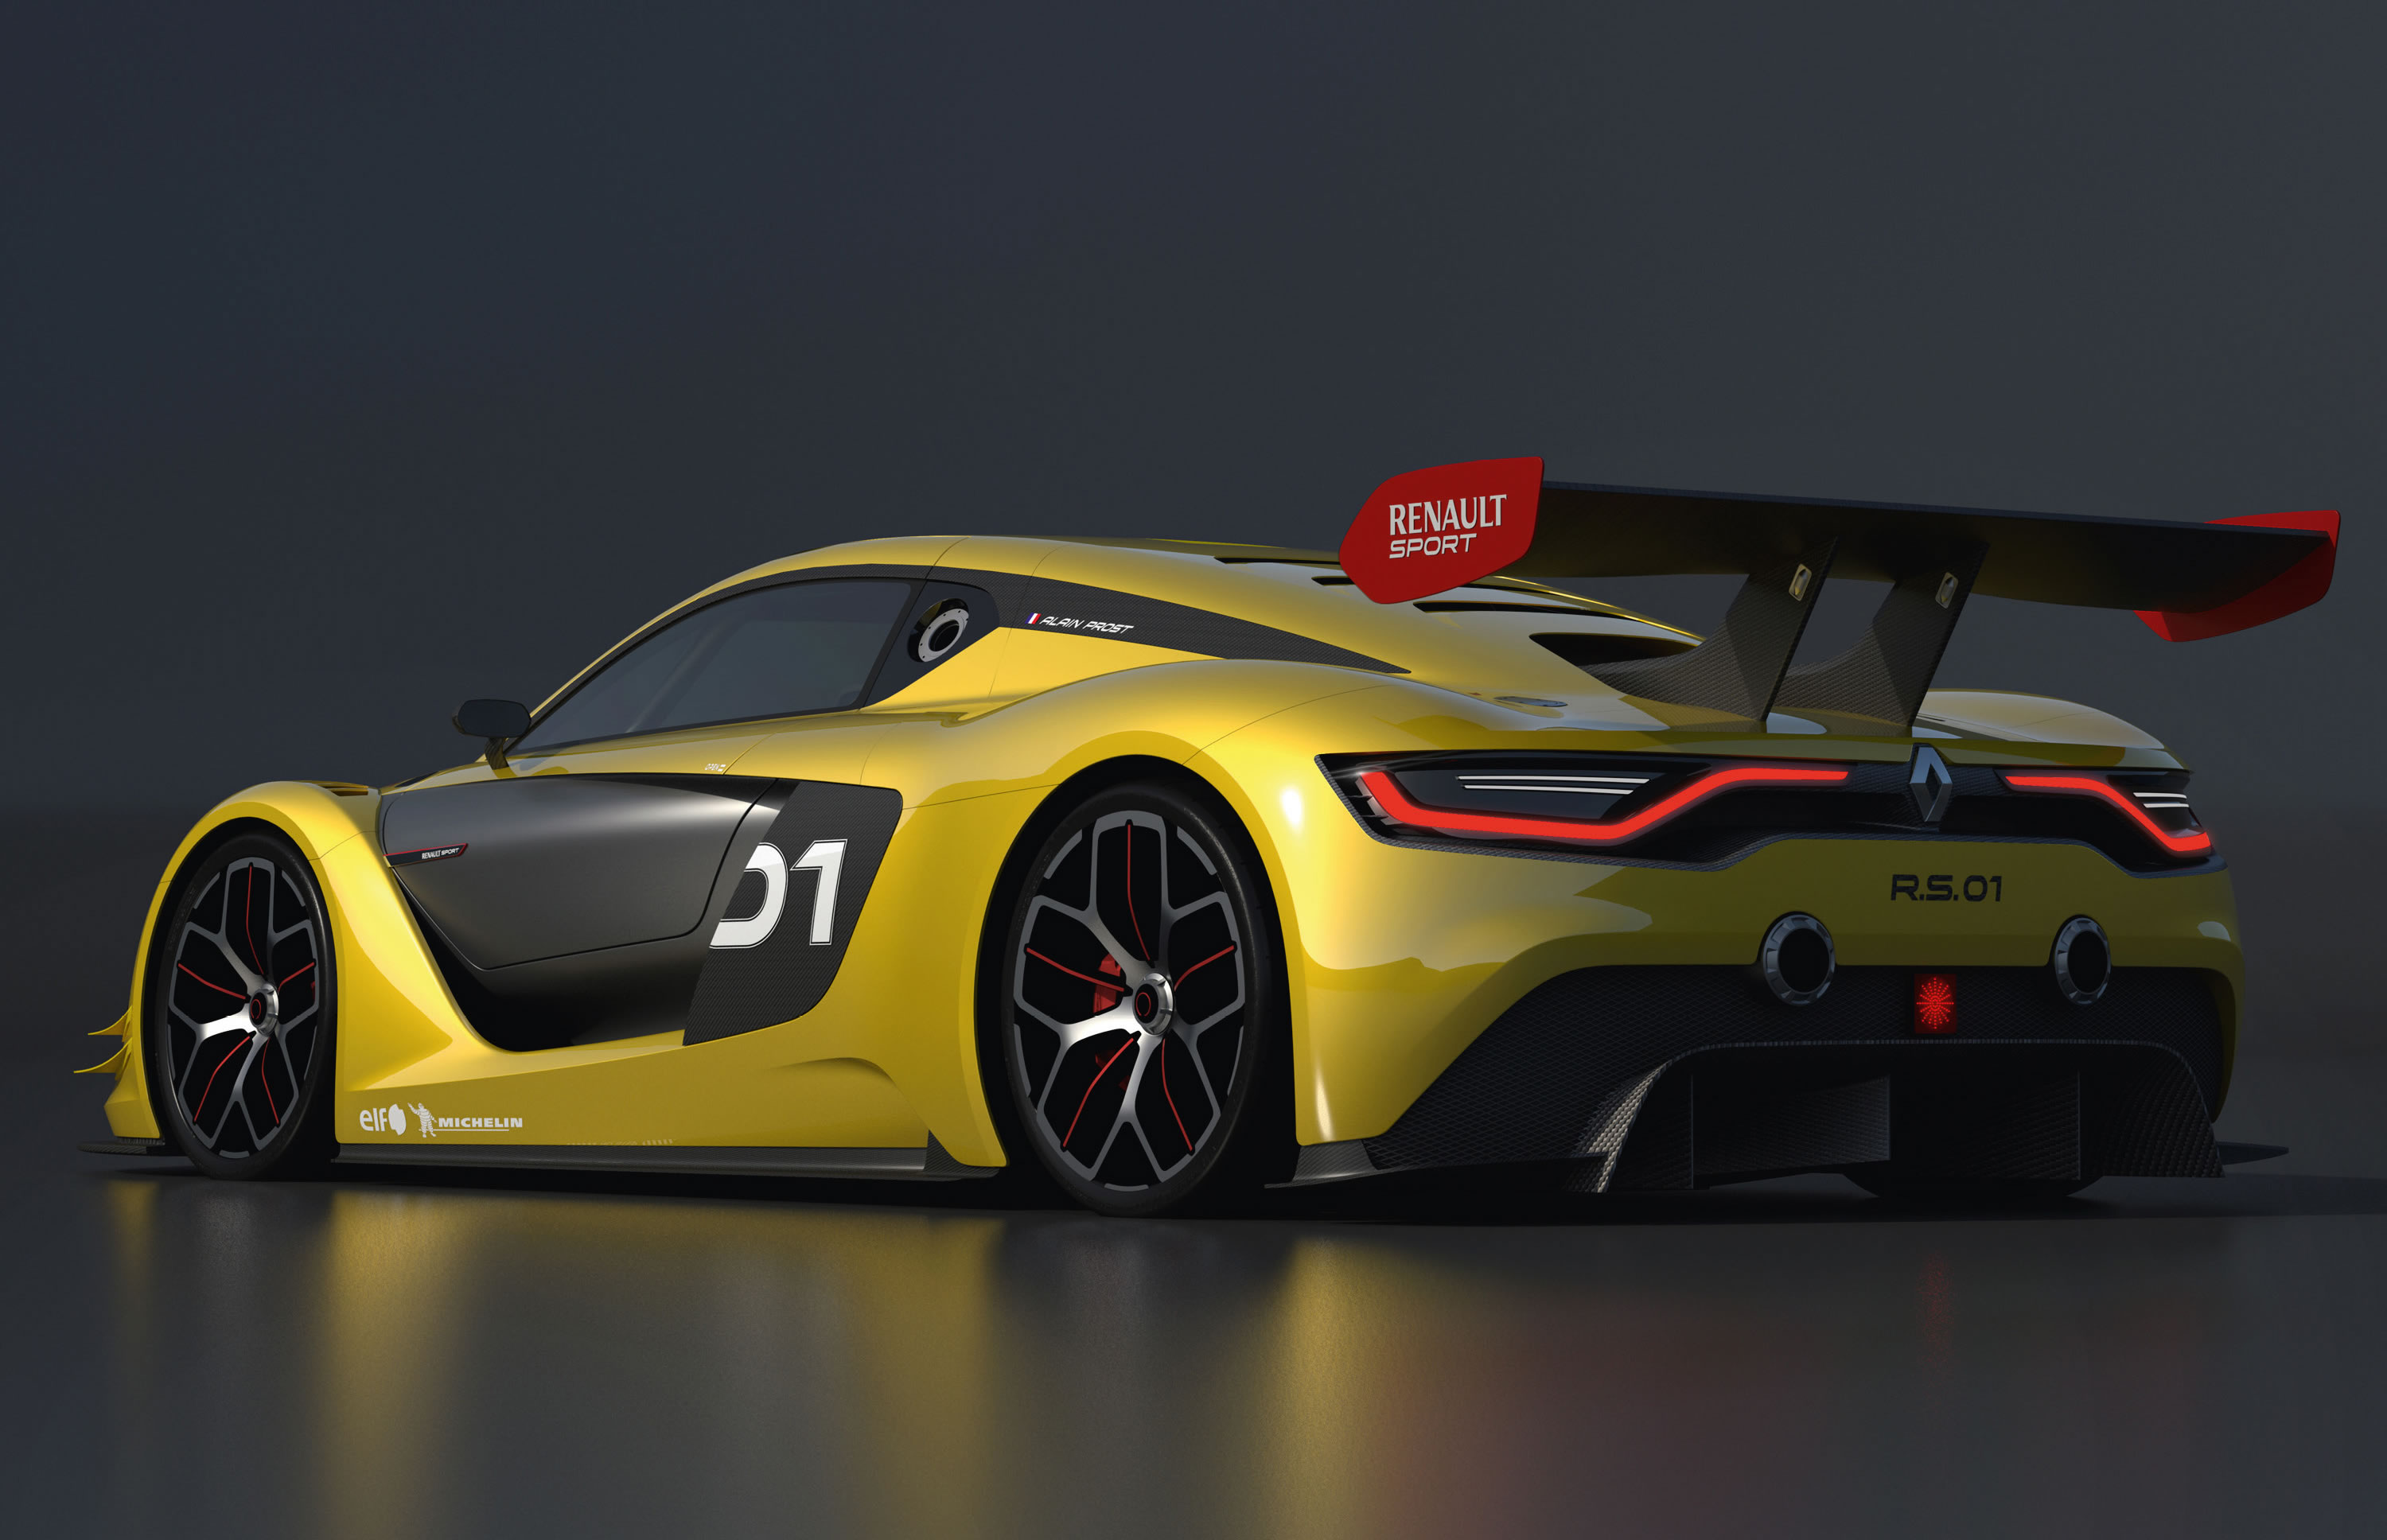 2015 renault renaultsport r s 01 race car photos specs and review rs. Black Bedroom Furniture Sets. Home Design Ideas